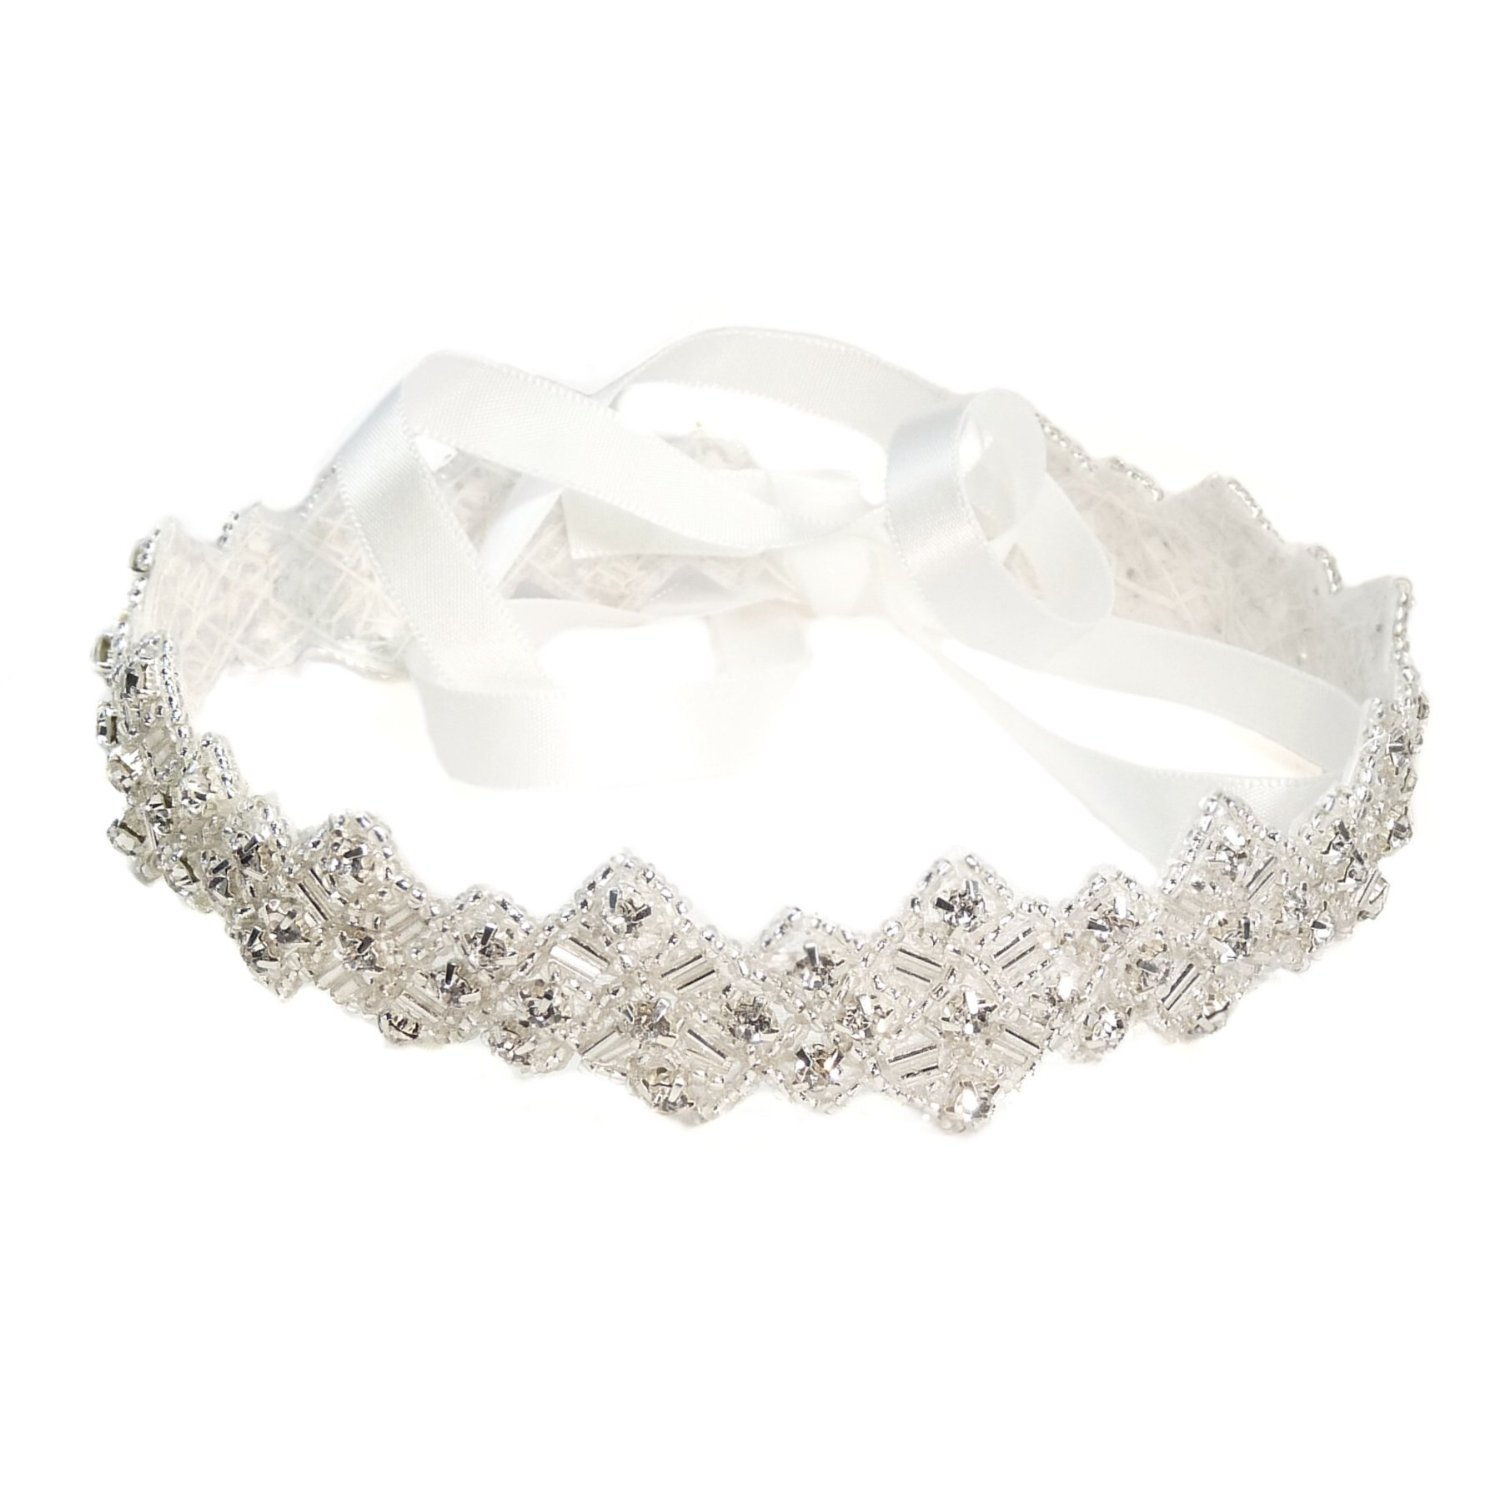 Handmade Crystals White Satin Ribbon Tie Wedding Bridal Headband on sale